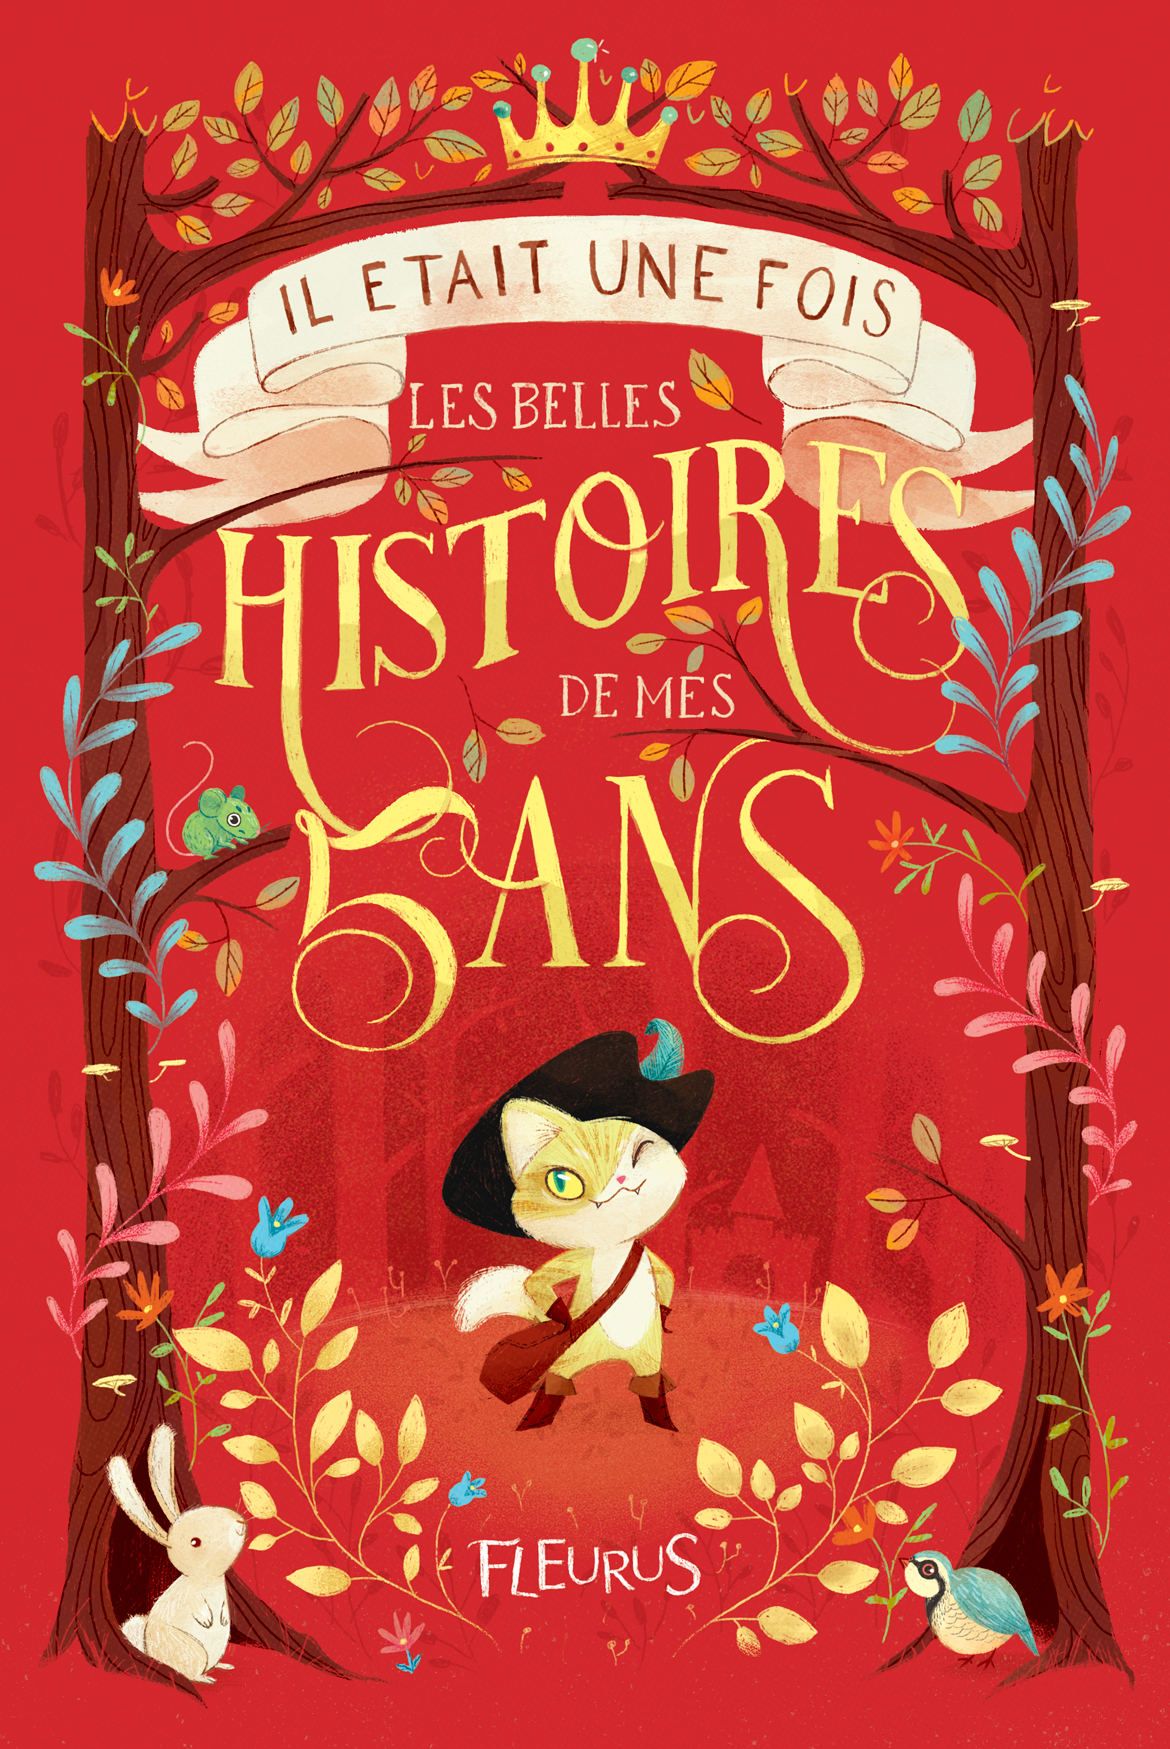 Book Cover Drawing Uk ~ Children s book covers for fleurus editions on behance